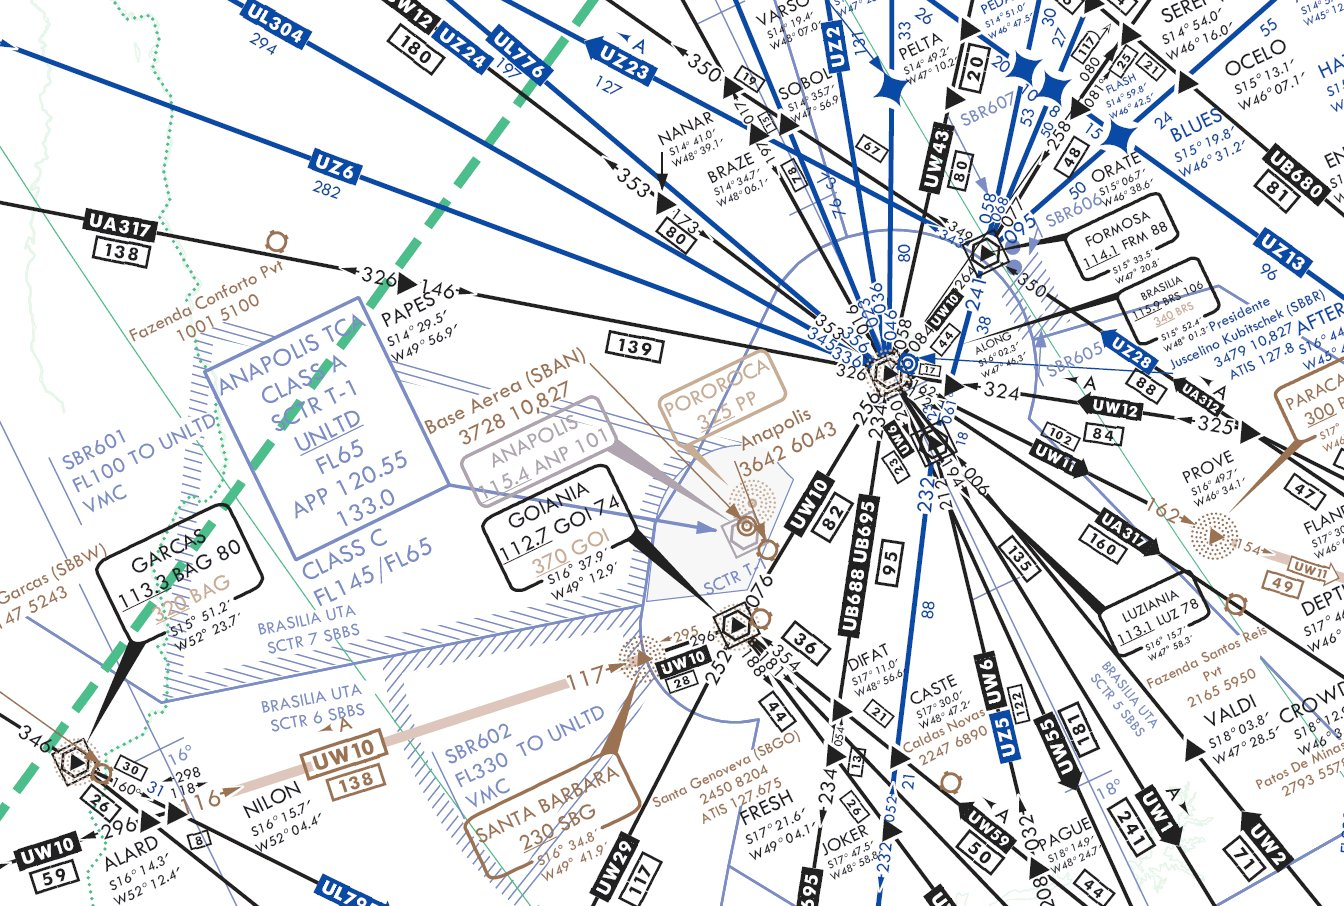 IFR_high_altitude_en_route_chart_-_Brasilia_-_UW2,_UZ6_airways.